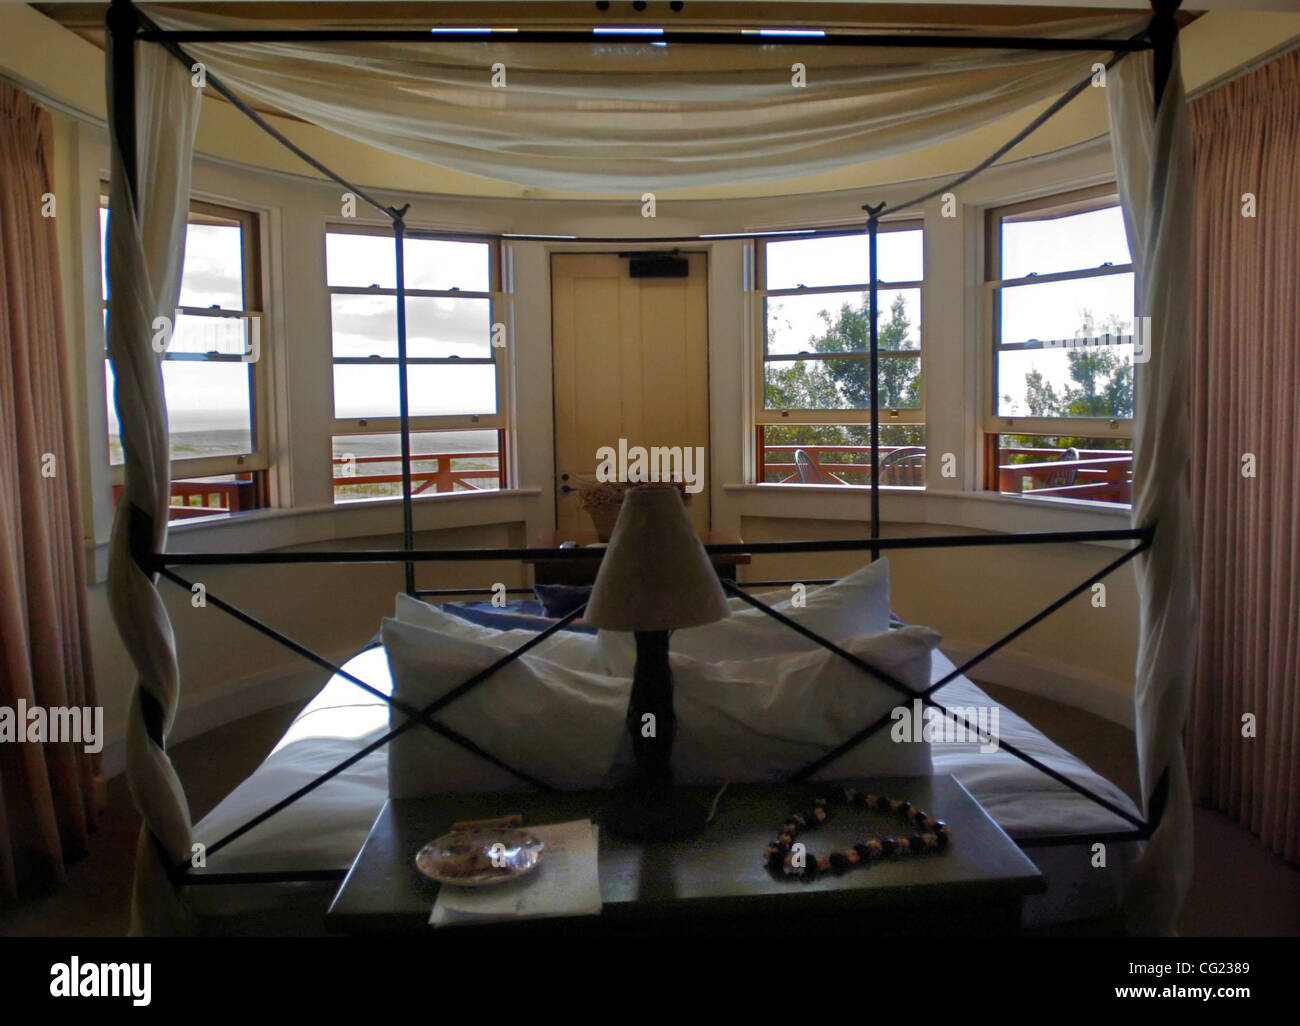 Sacramento Bee/ Janet Fullwood 6/ / 07 This room at the Lodge at Molokai Ranch features a semi-circular wall of - Stock Image